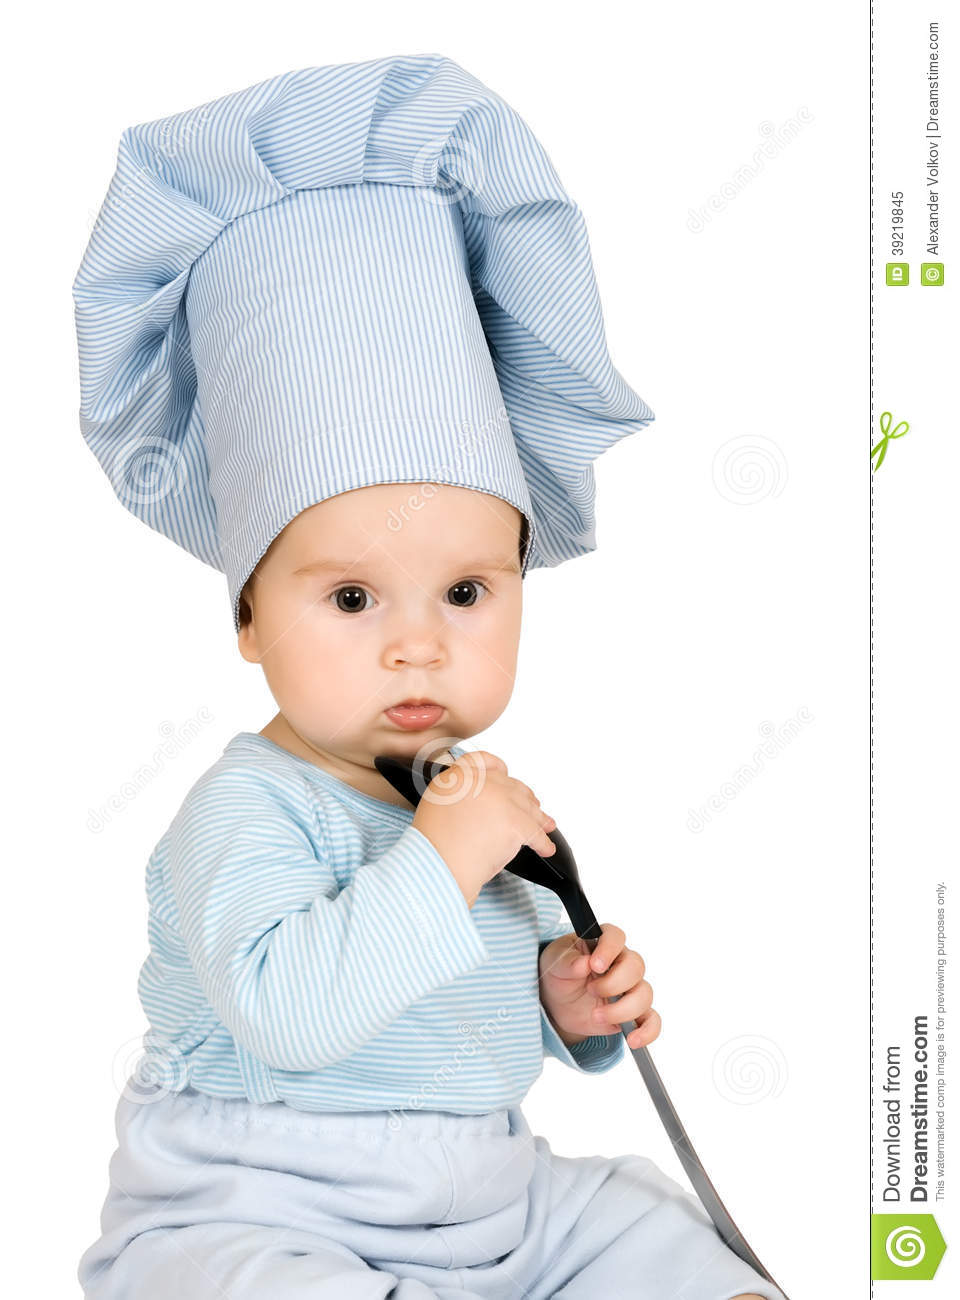 Little Child With Metal Ladle And Cook Hat Stock Image - Image of ... 0b58e82dbca5